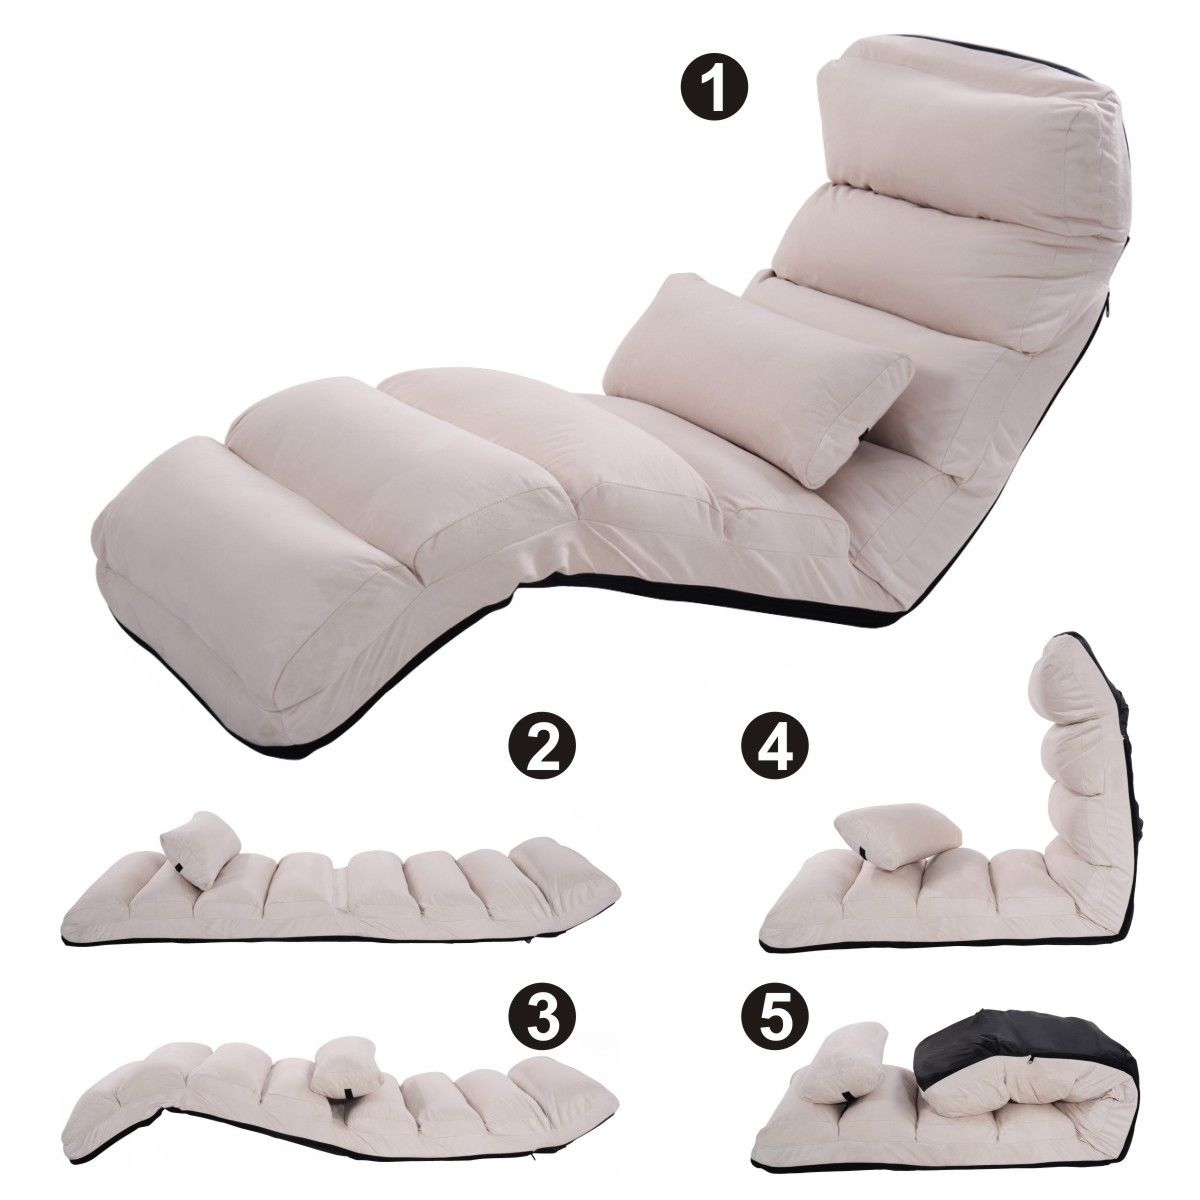 baby rocking chair walmart laptop gaming costway beige folding lazy sofa stylish couch beds lounge w/pillow - walmart.com